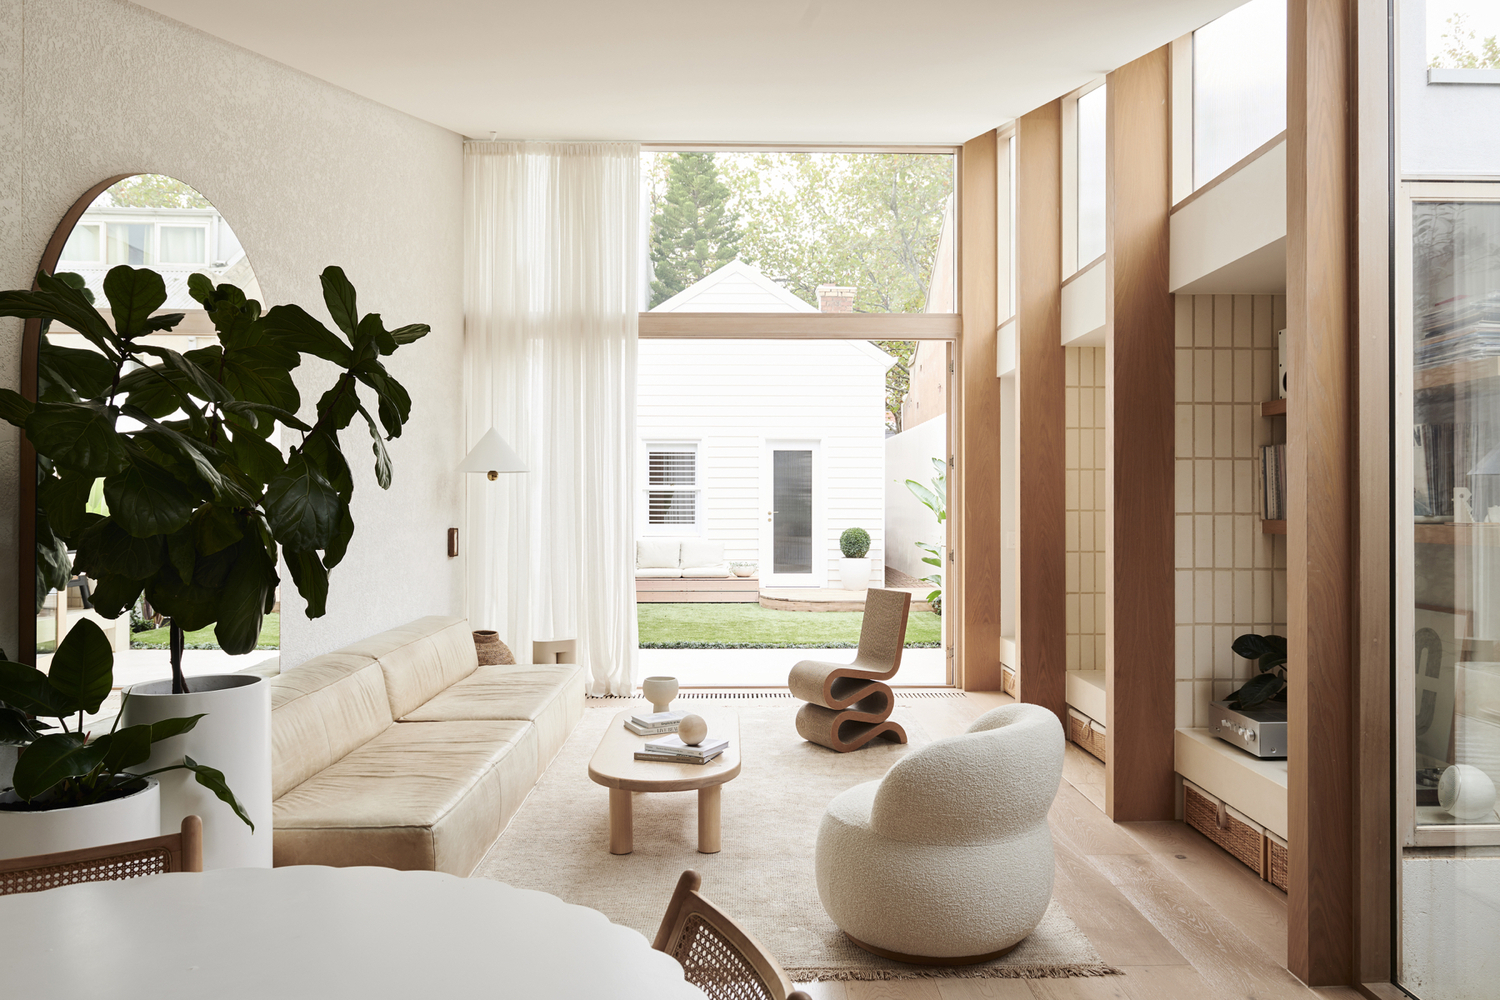 Contemporary Architecture, Pictures Of Living Rooms